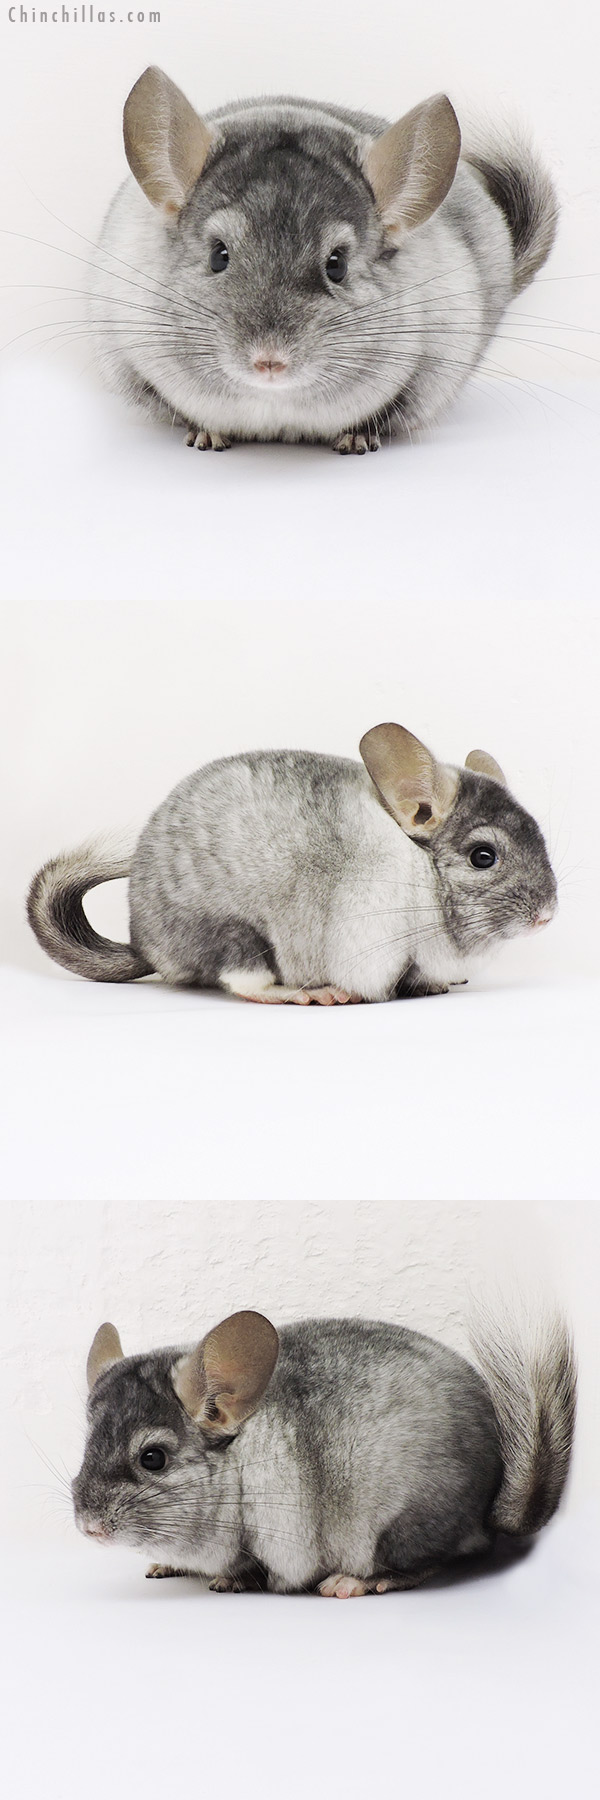 15100 Show Quality Ebony & White Mosaic Male Chinchilla